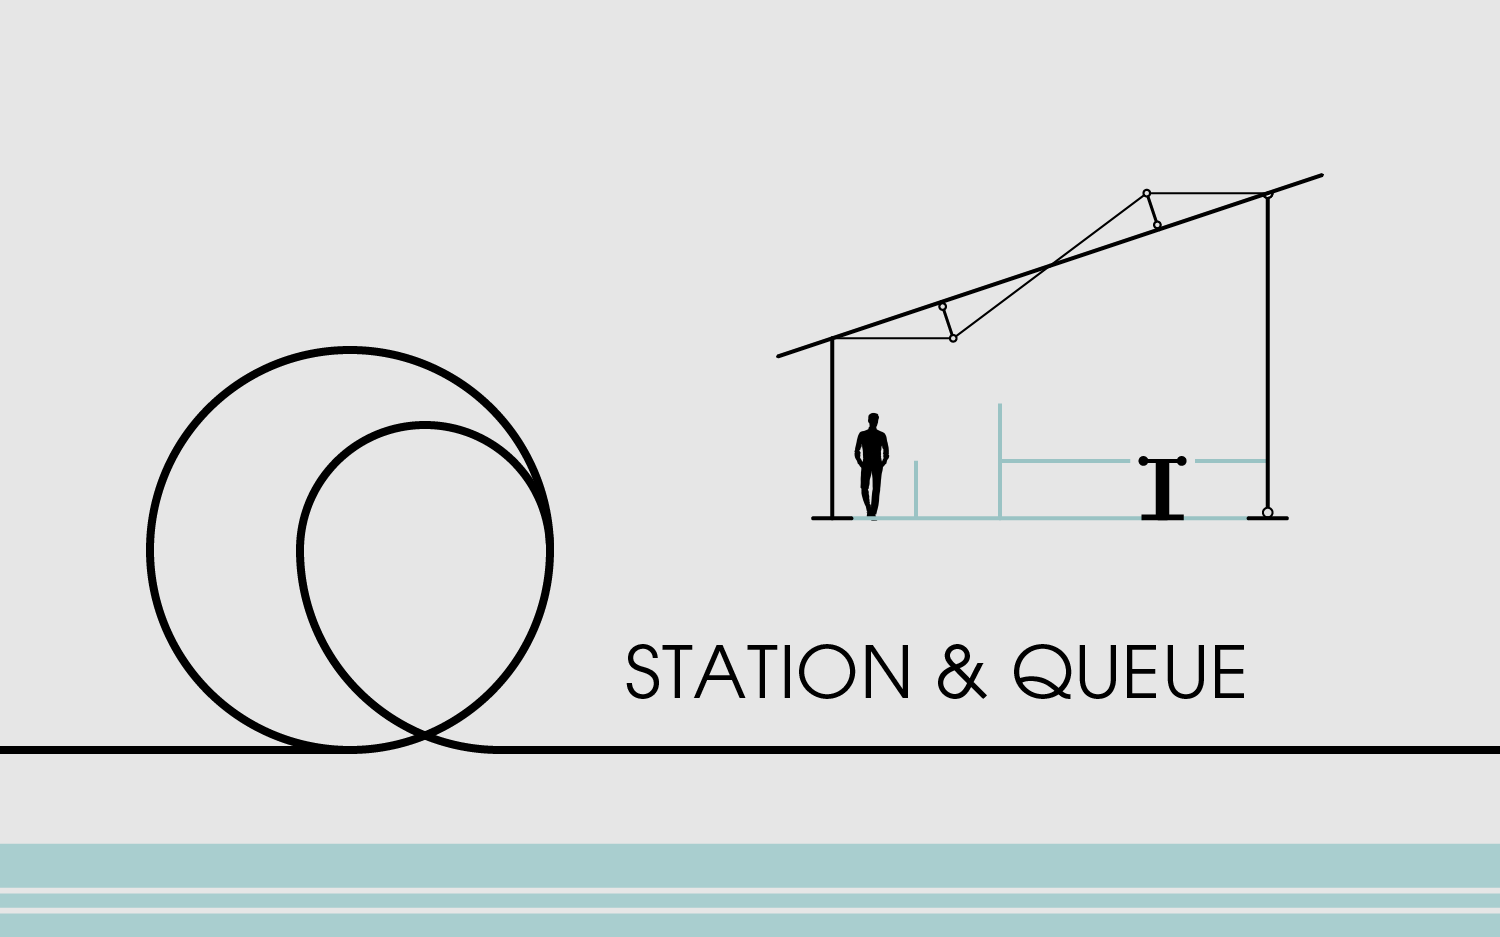 Station & Queue